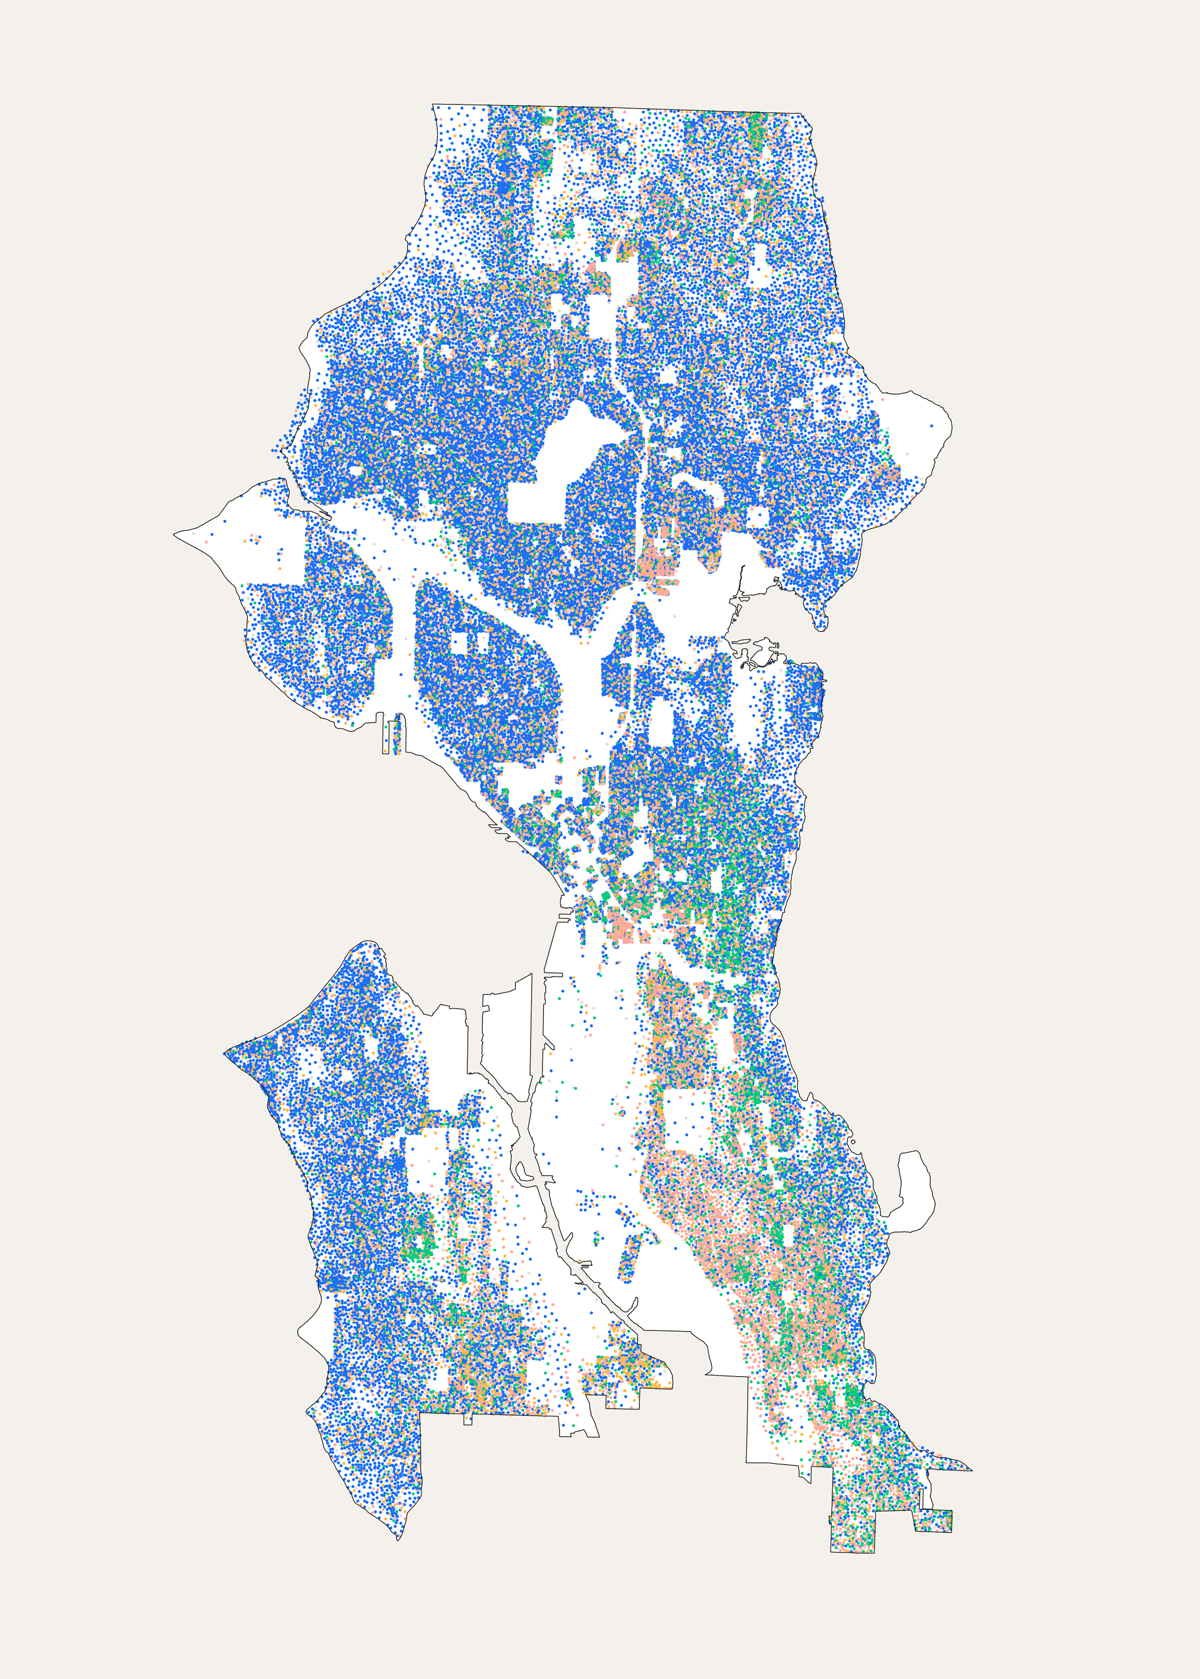 Morphocode Explorer: Seattle Demographics Map